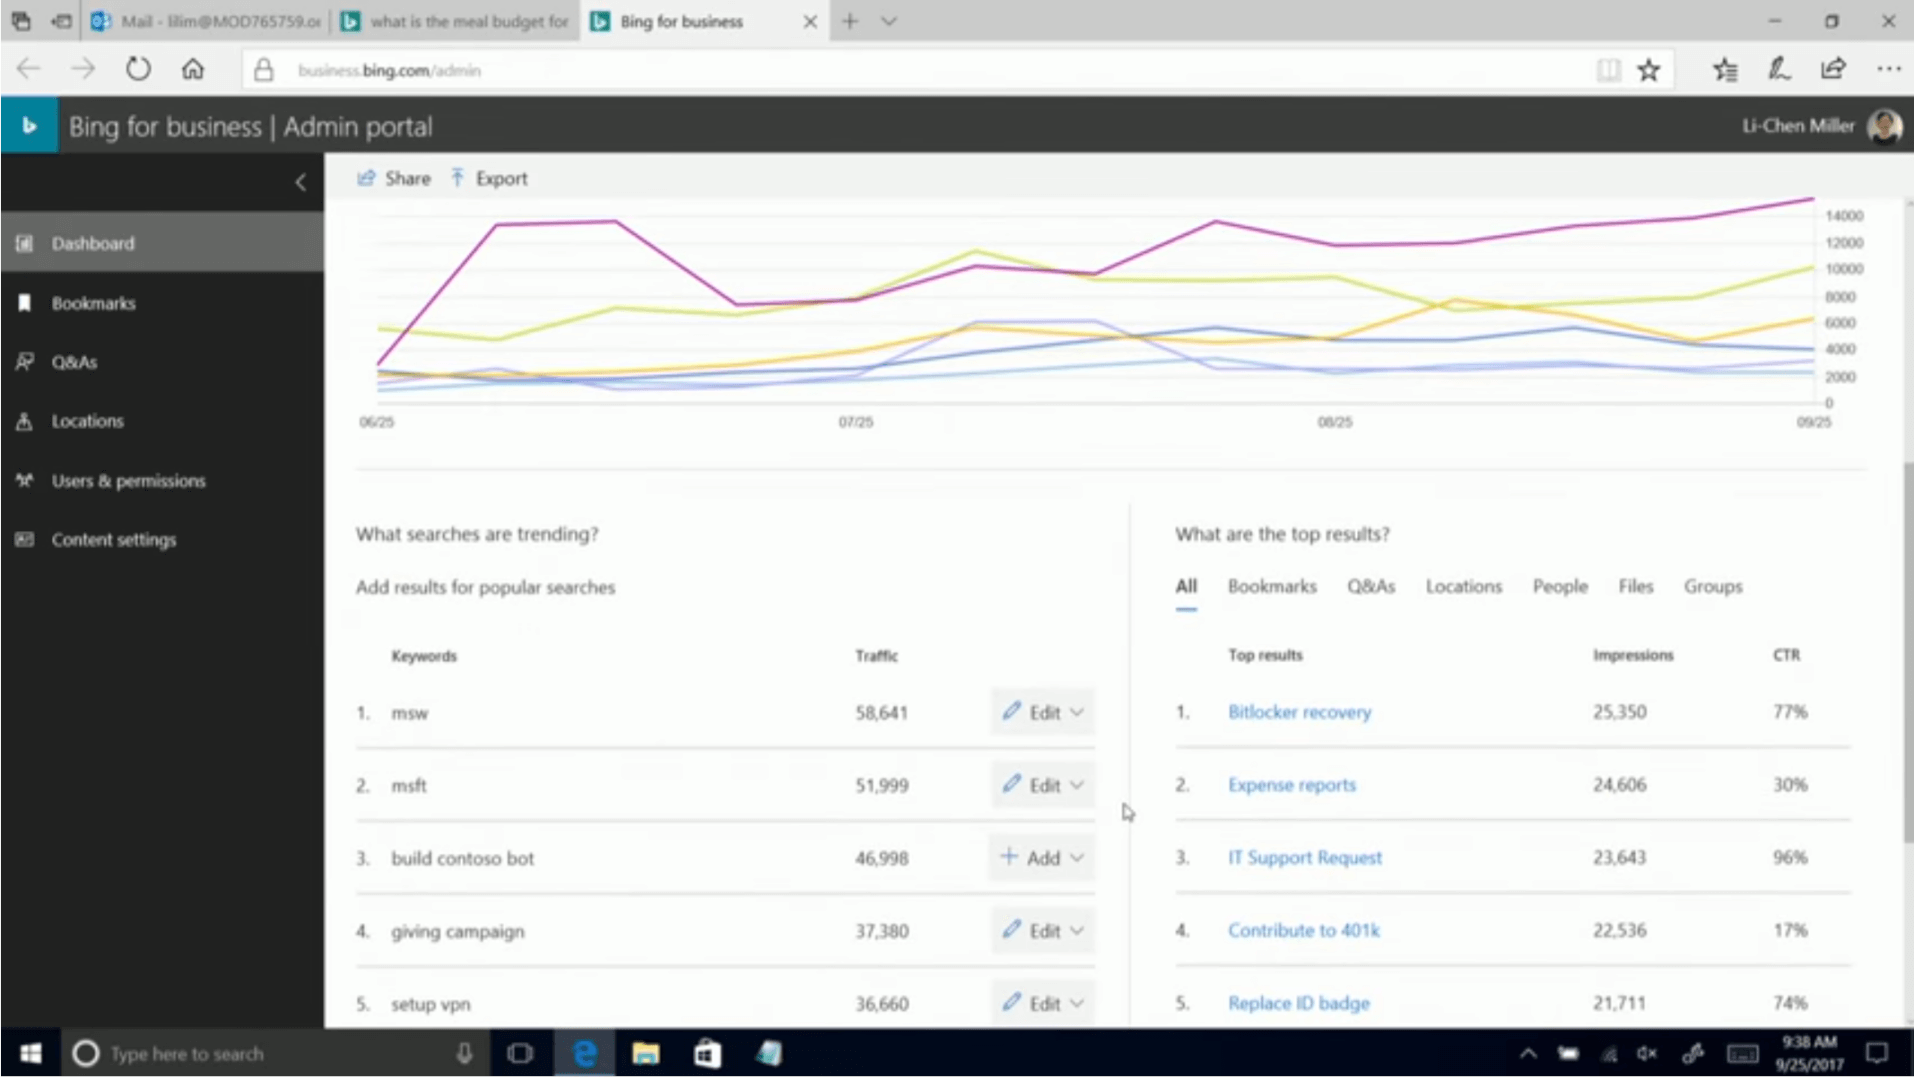 """Texte de remplacement généré par une machine: ihmOM0076S7S9.t* Bing for business I Admin portal Share Bing x f Export (Wiboard Q&As uxatons us«s & C'Y'tent What searches are trending? Add results populat searches msw 2. msft tXJild contoso bot campaW1 setup W""""at age the top tes'/ts? Grmsps 51999 46998 37.380 All 2. 3. 4. S. Bookmarks Q&As recovery Expense reports II Support Roquest Contribute to Replace 10 badge 24606 2160 22.536 e Type hete to search"""